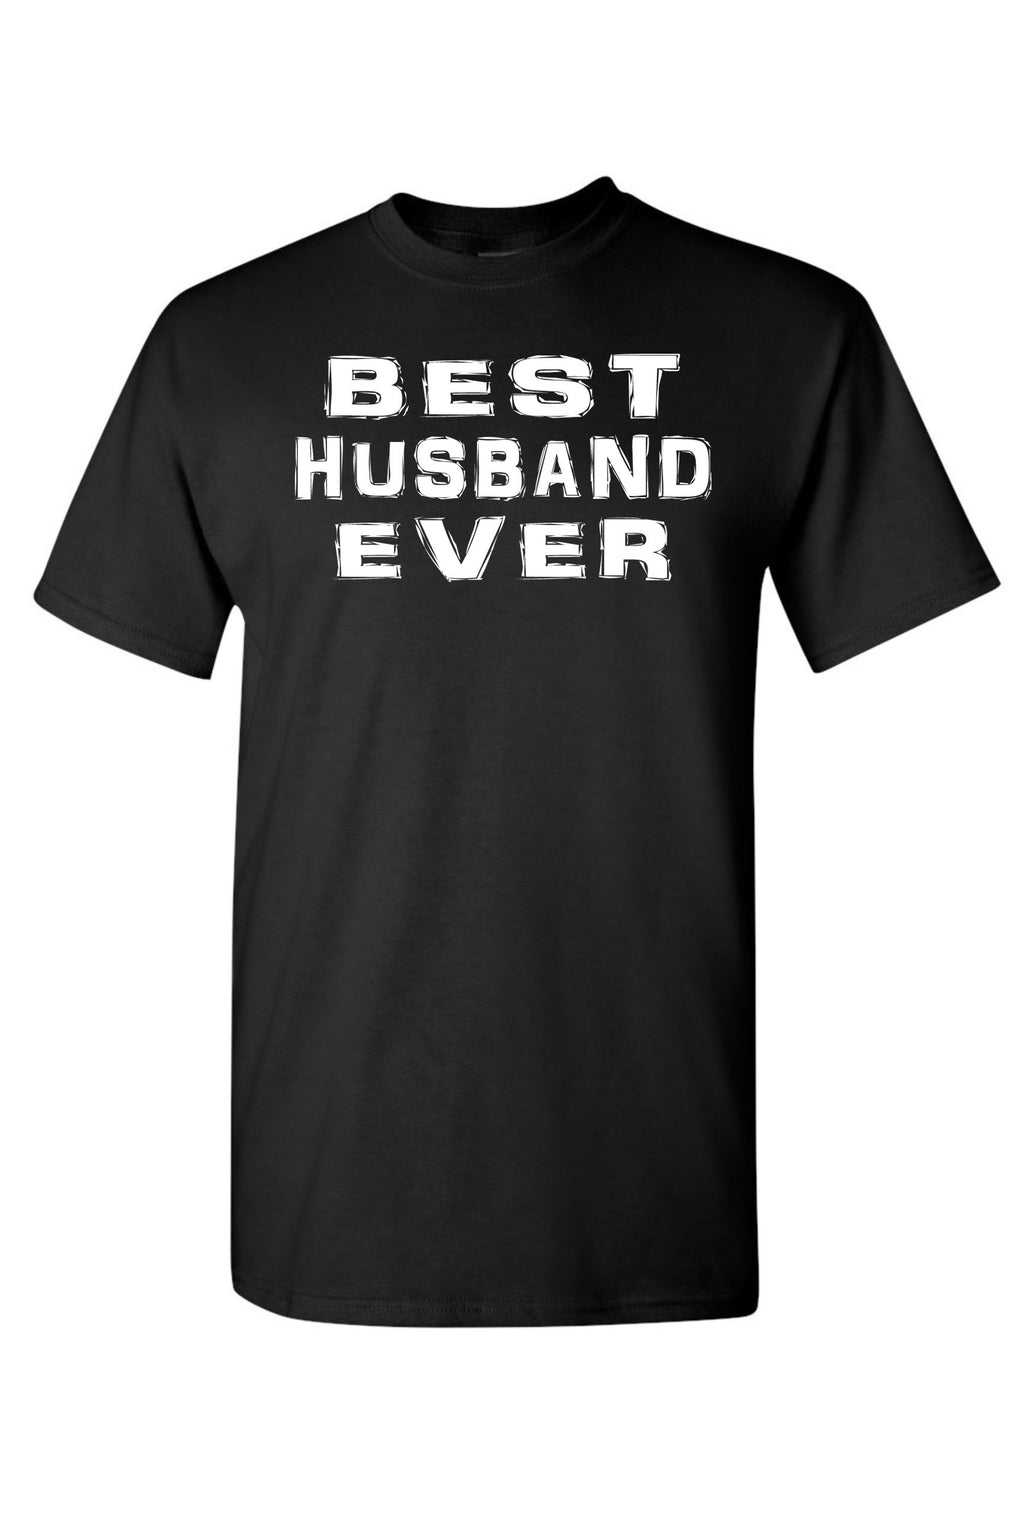 Unisex Best Husband Ever Short Sleeve Shirt